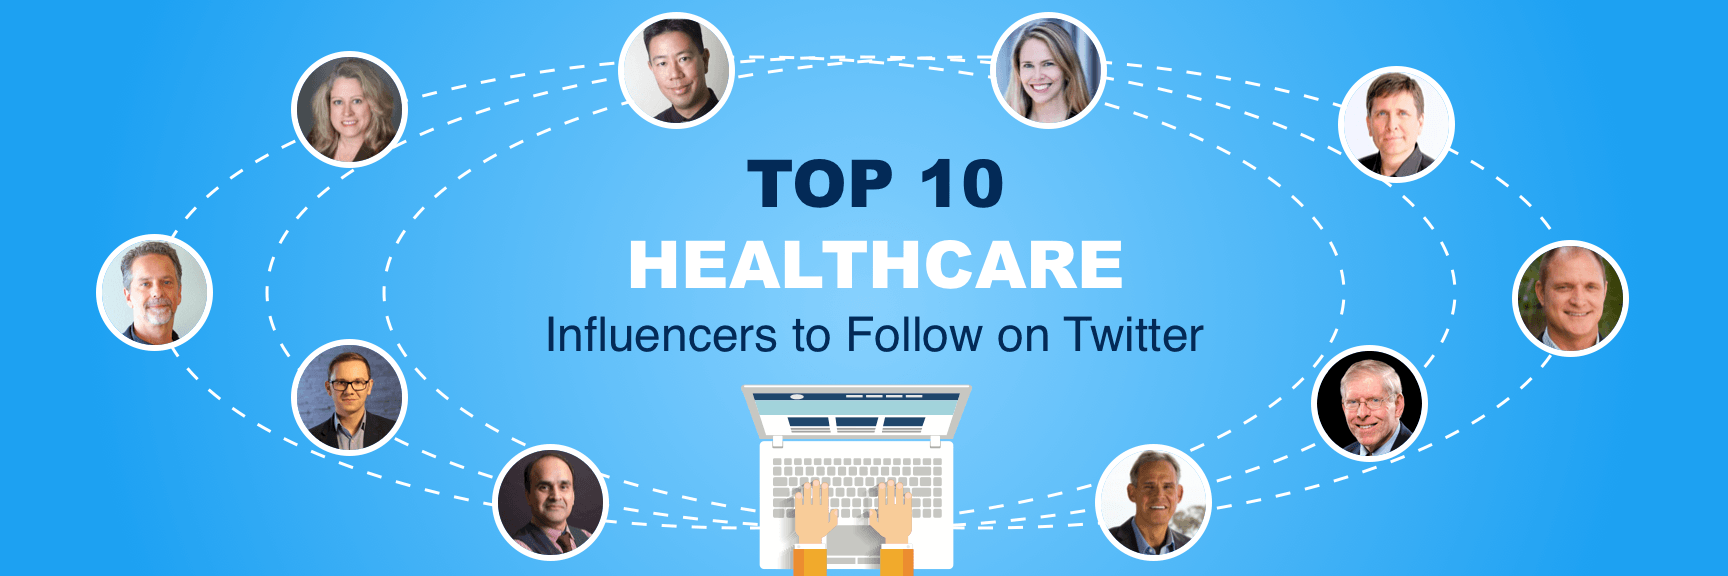 healthcare influencers to follow on twitter